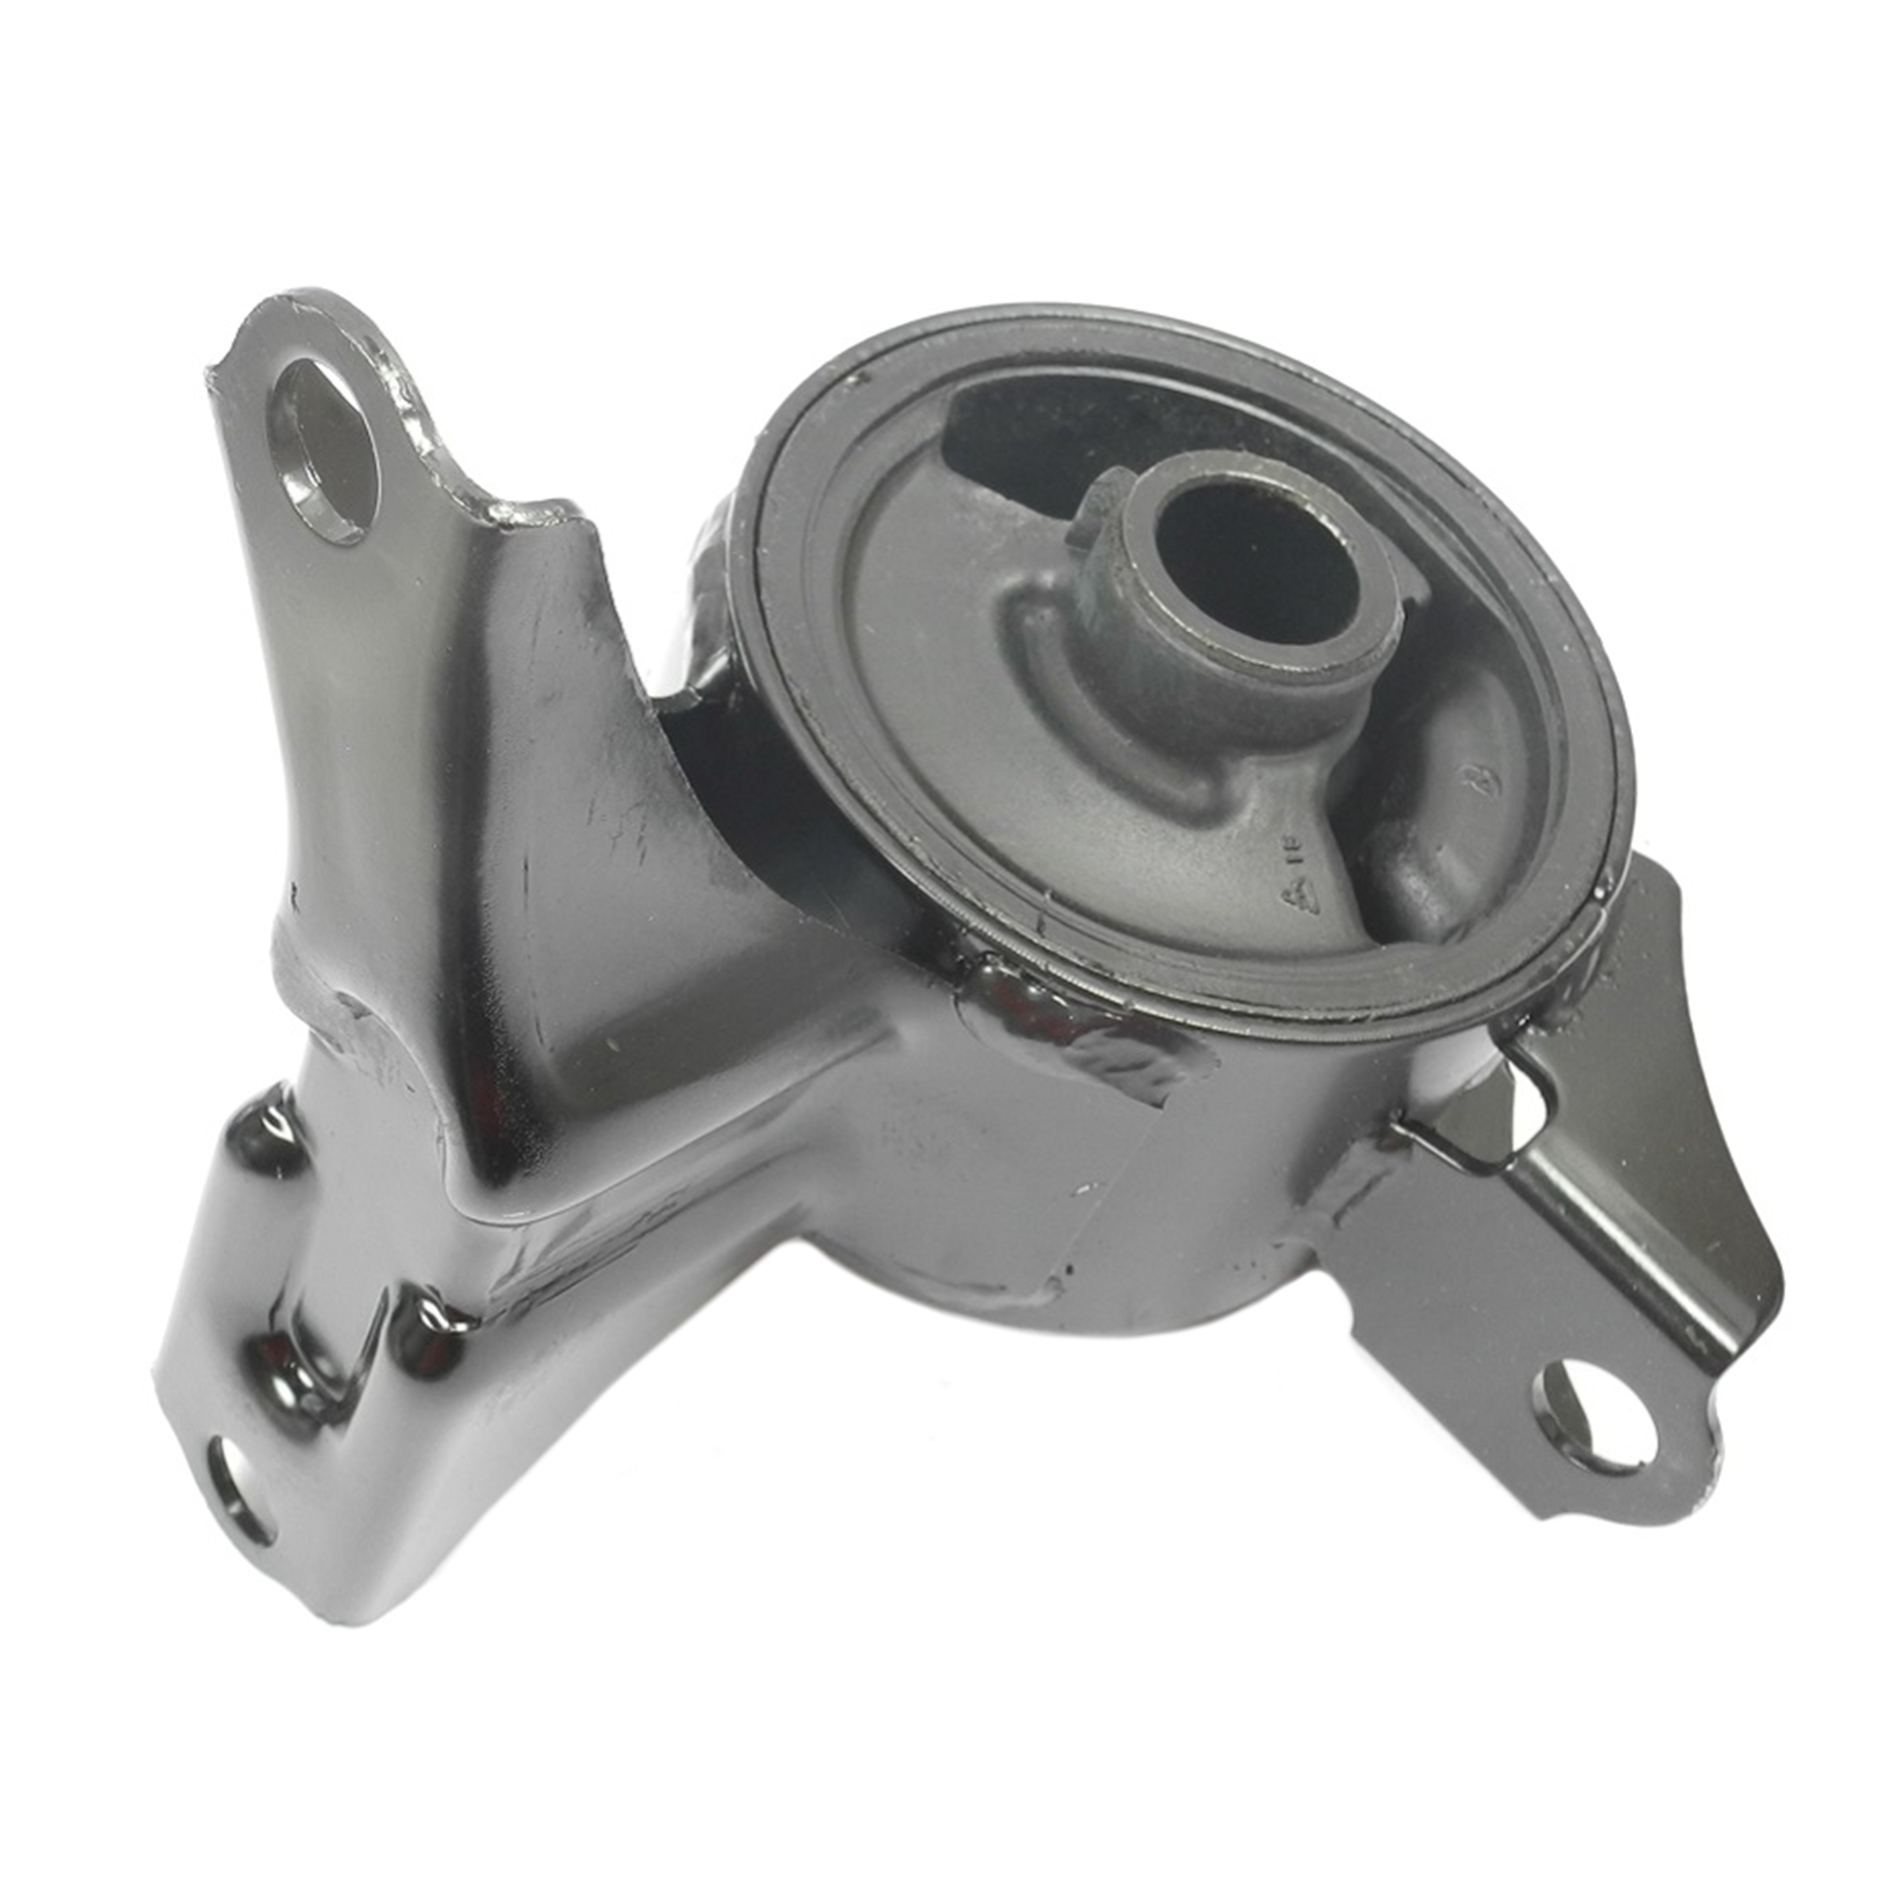 Engine Motor Mount 6552 Front Right For Acura CL TL 3.2L